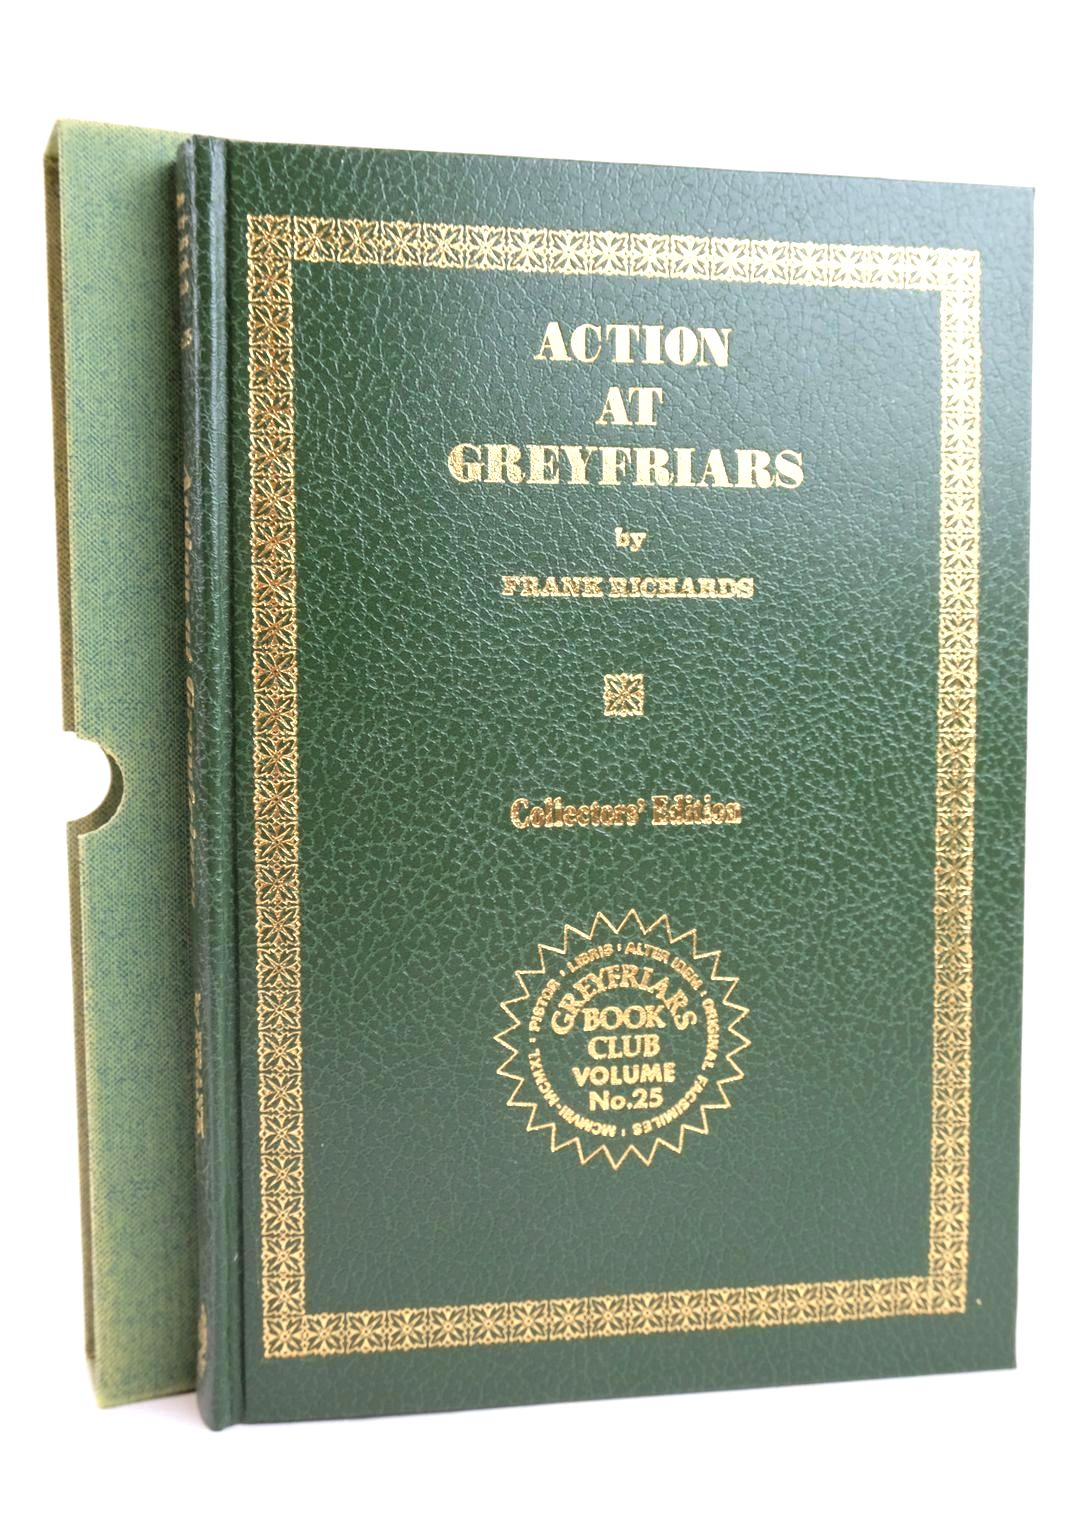 Photo of ACTION AT GREYFRIARS written by Richards, Frank published by Howard Baker Press (STOCK CODE: 1319790)  for sale by Stella & Rose's Books